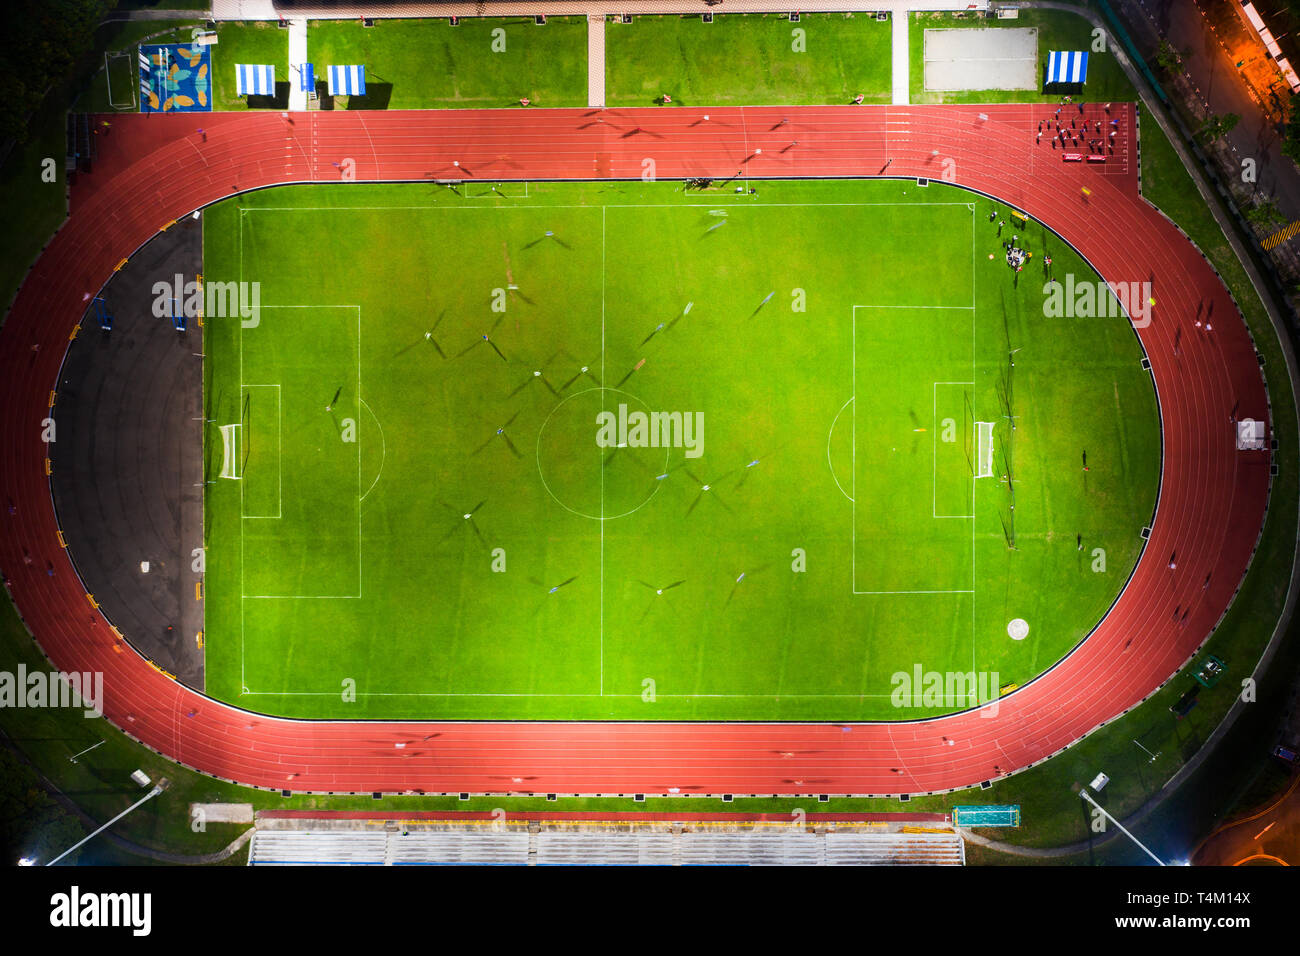 Aerial view of a soccer pitch with players playing soccer and a running track for joggers within a light up stadium. - Stock Image